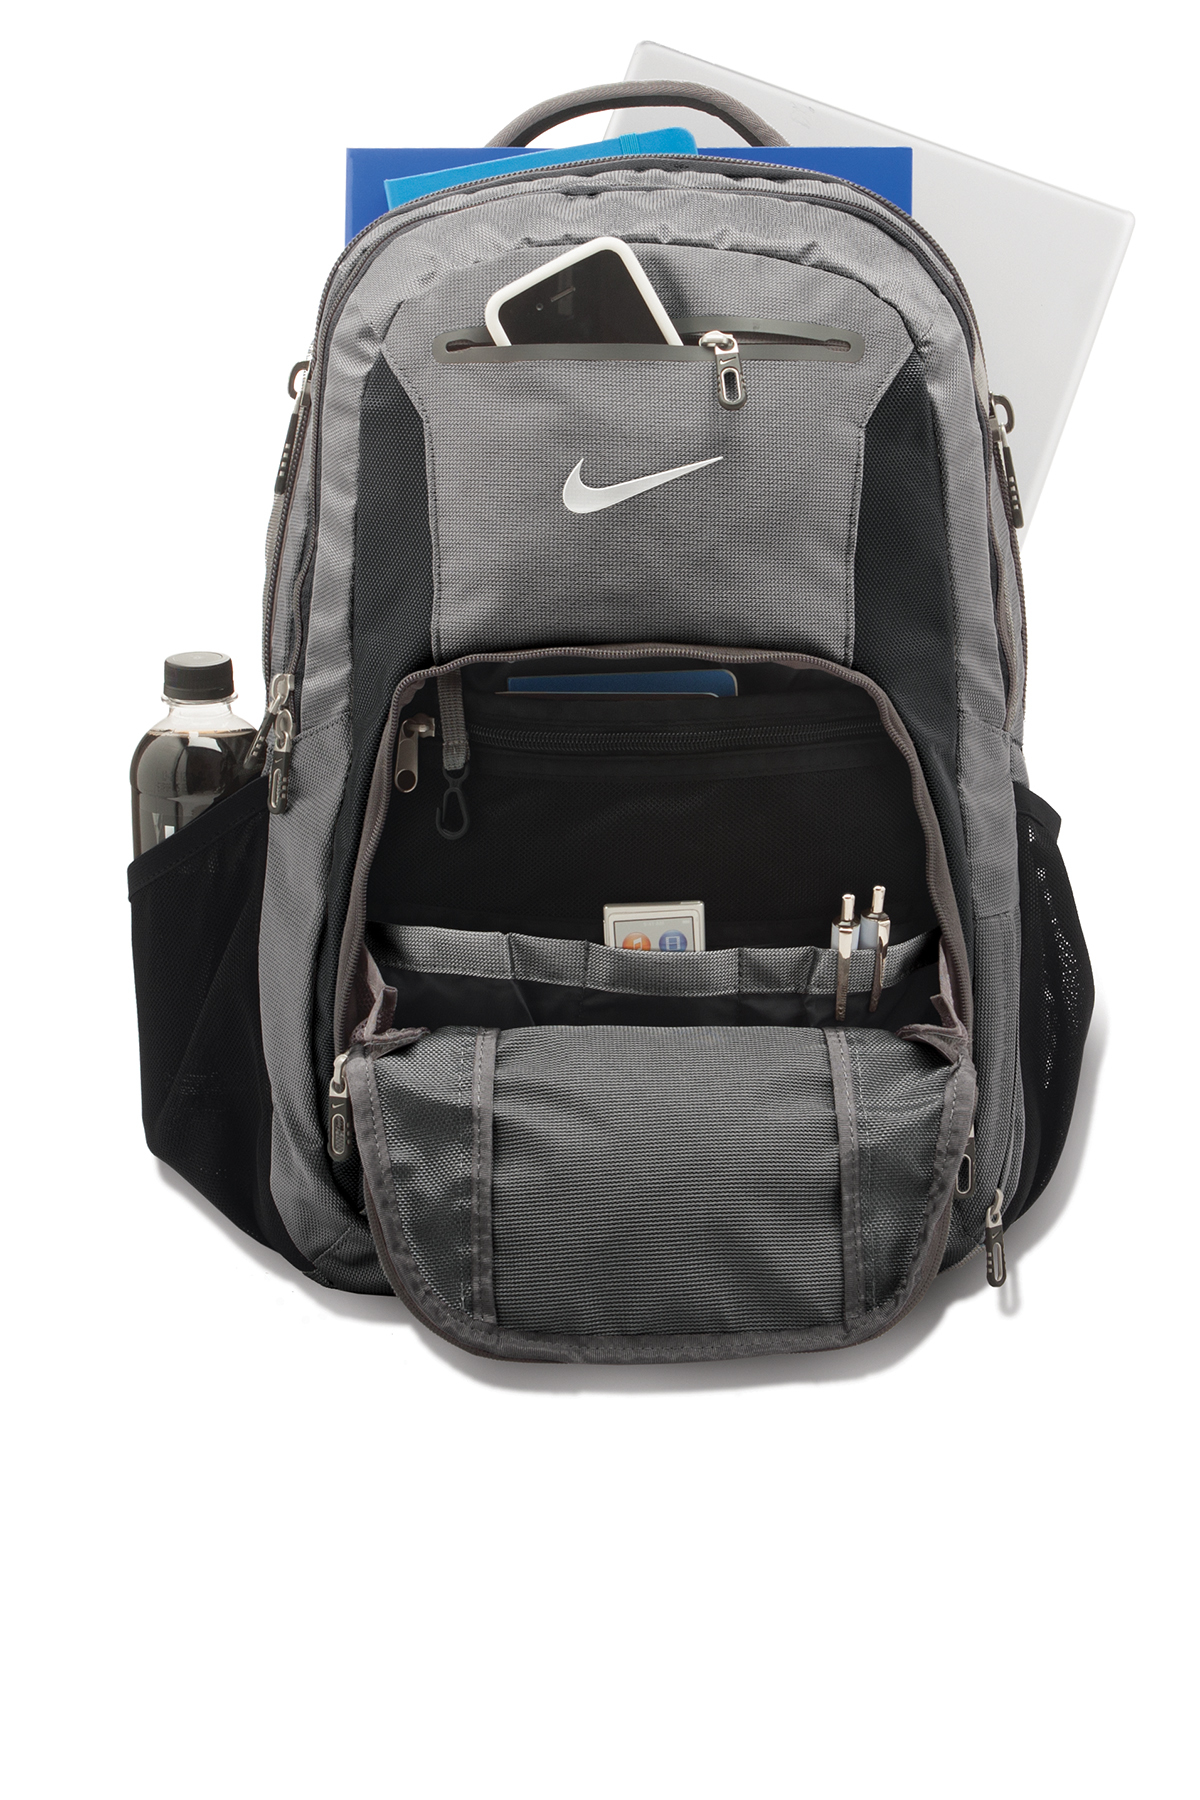 ... Backpacks  Nike Elite Backpack. A maximum of 8 logos have been  uploaded. Please remove a logo from My Logos to continue f06a820d85602